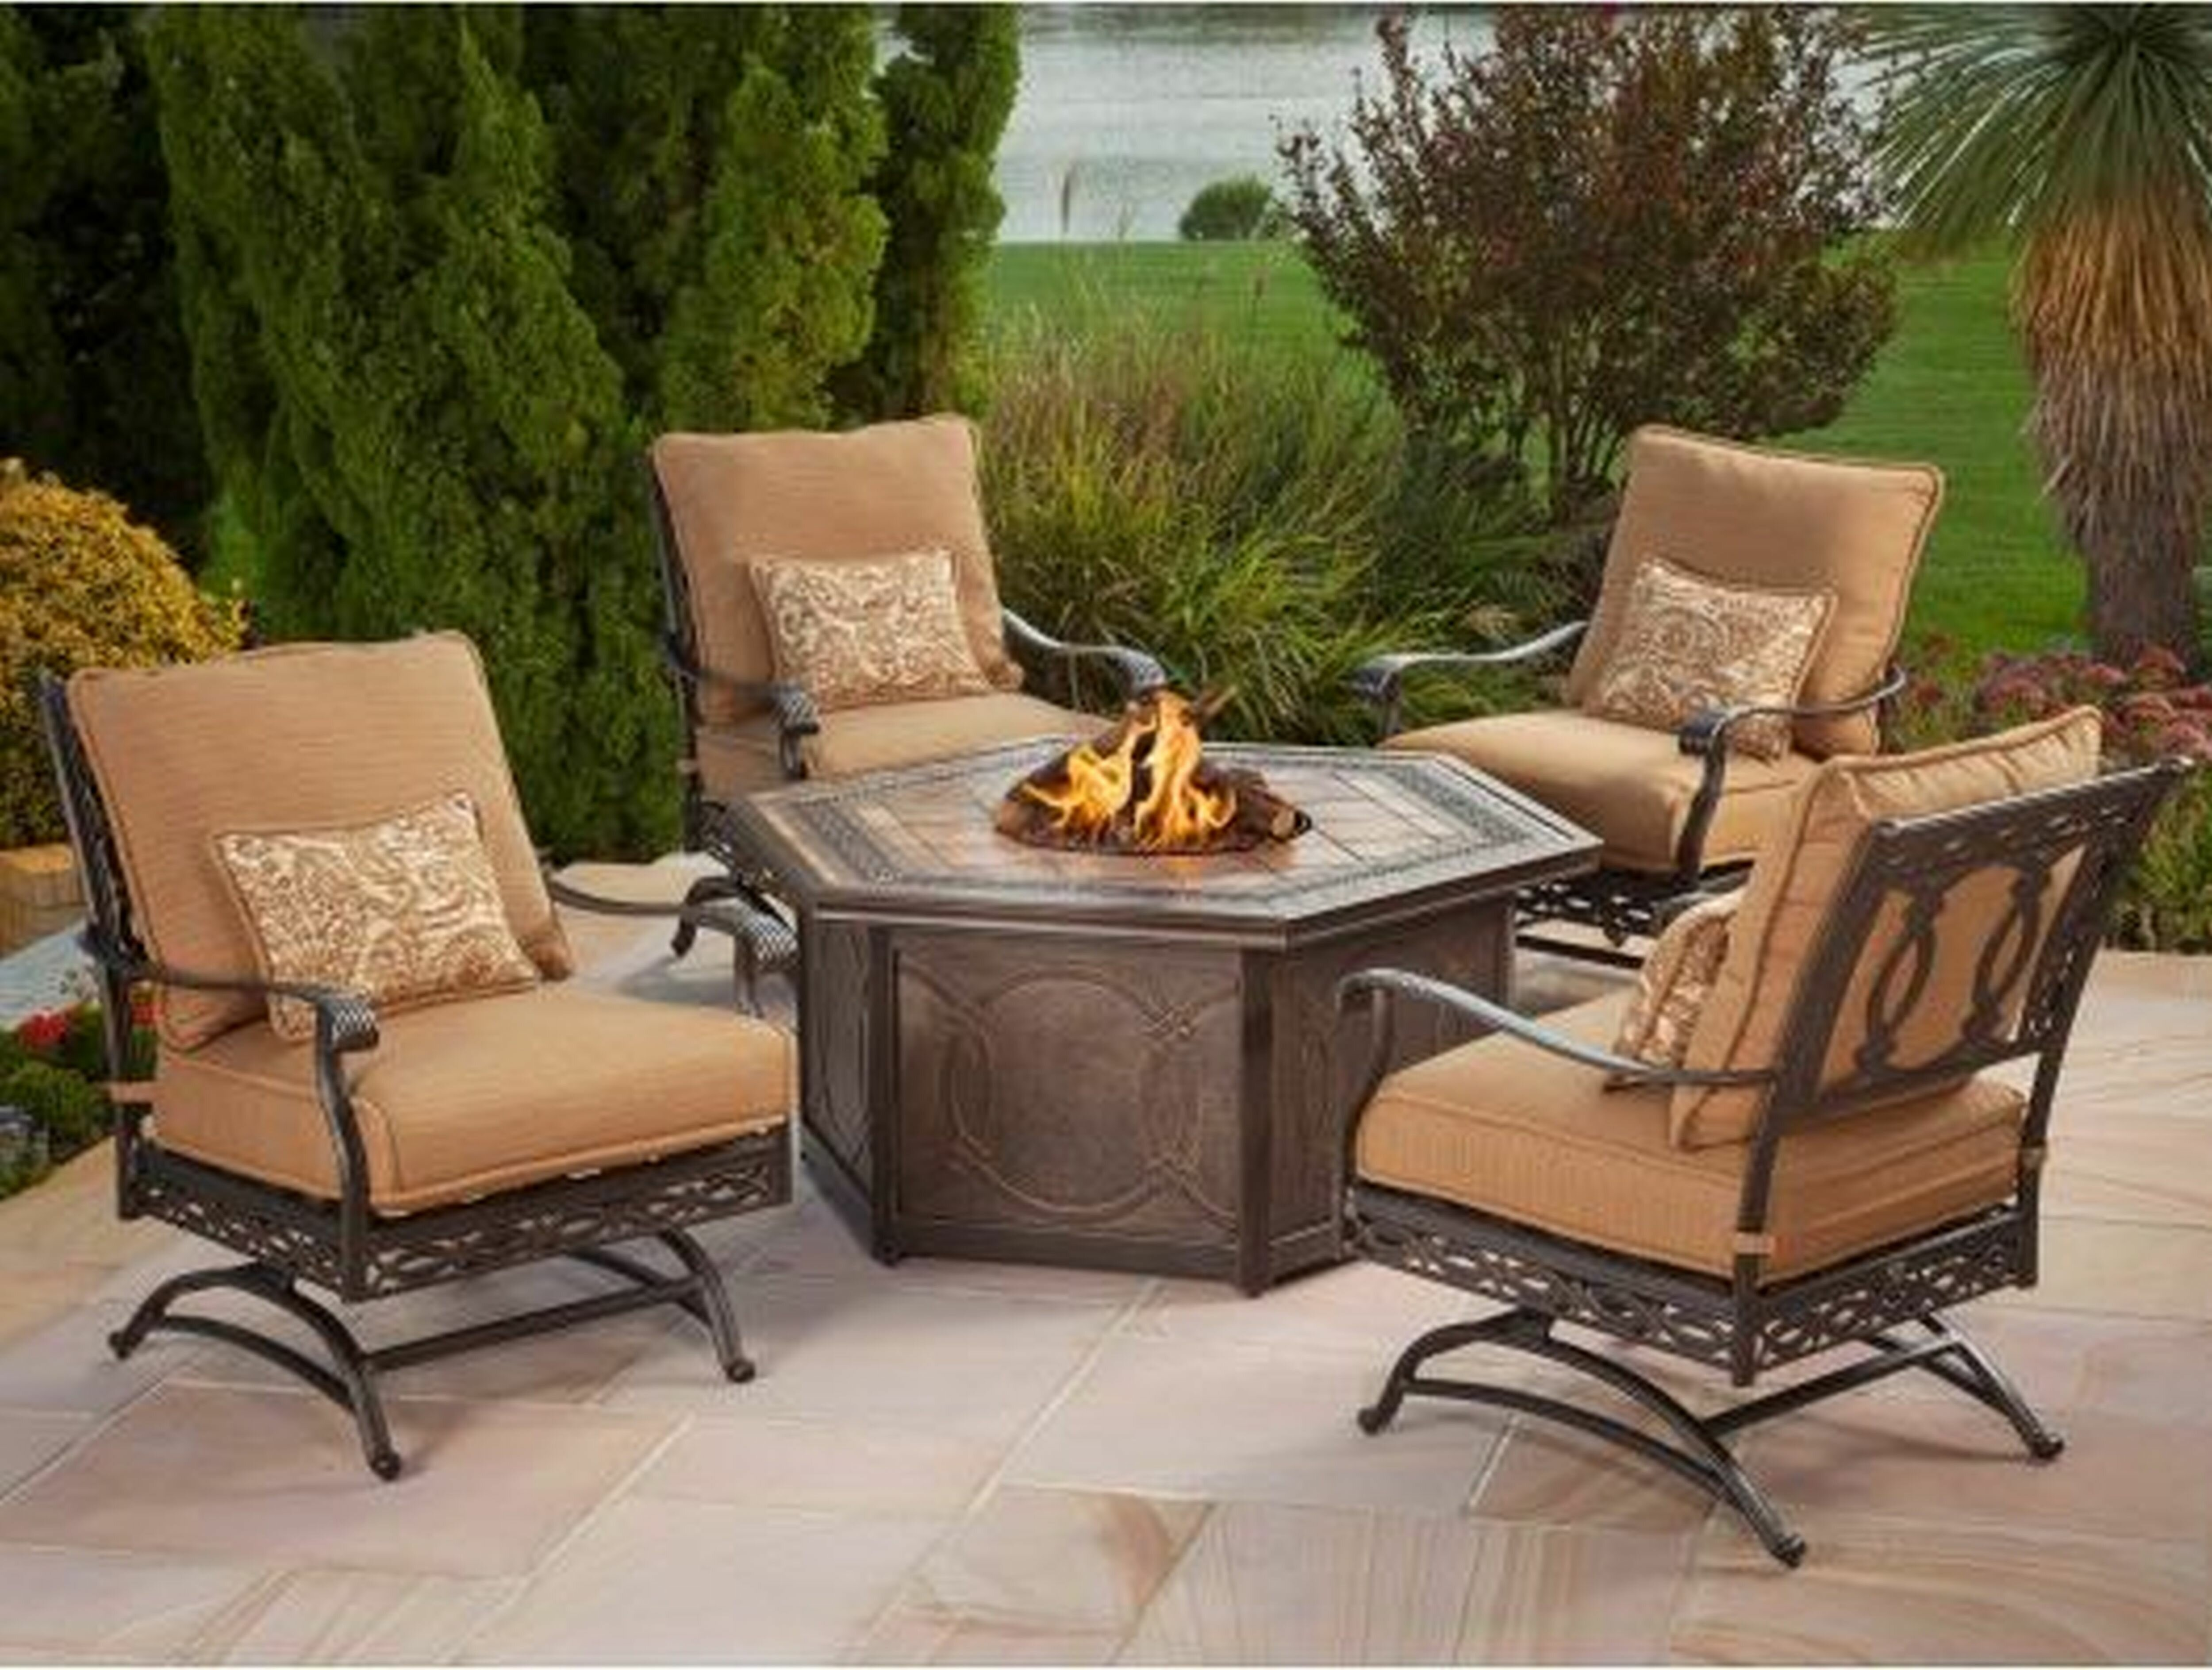 Furniture: Exciting Lowes Lounge Chairs For Cozy Outdoor ... on Lowes Patio Design id=57934